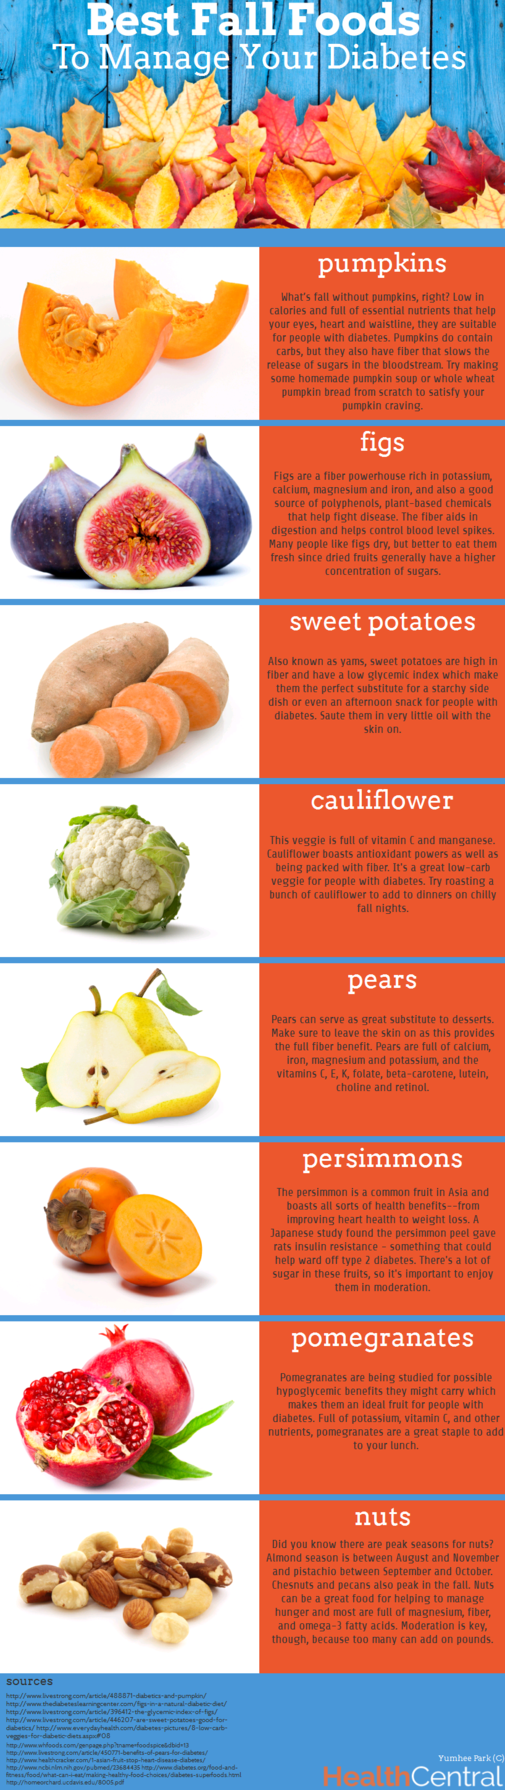 Diabetes infographic the best fall foods for diabetics diabetes infographic the best fall foods for diabetics diabetes health forumfinder Gallery